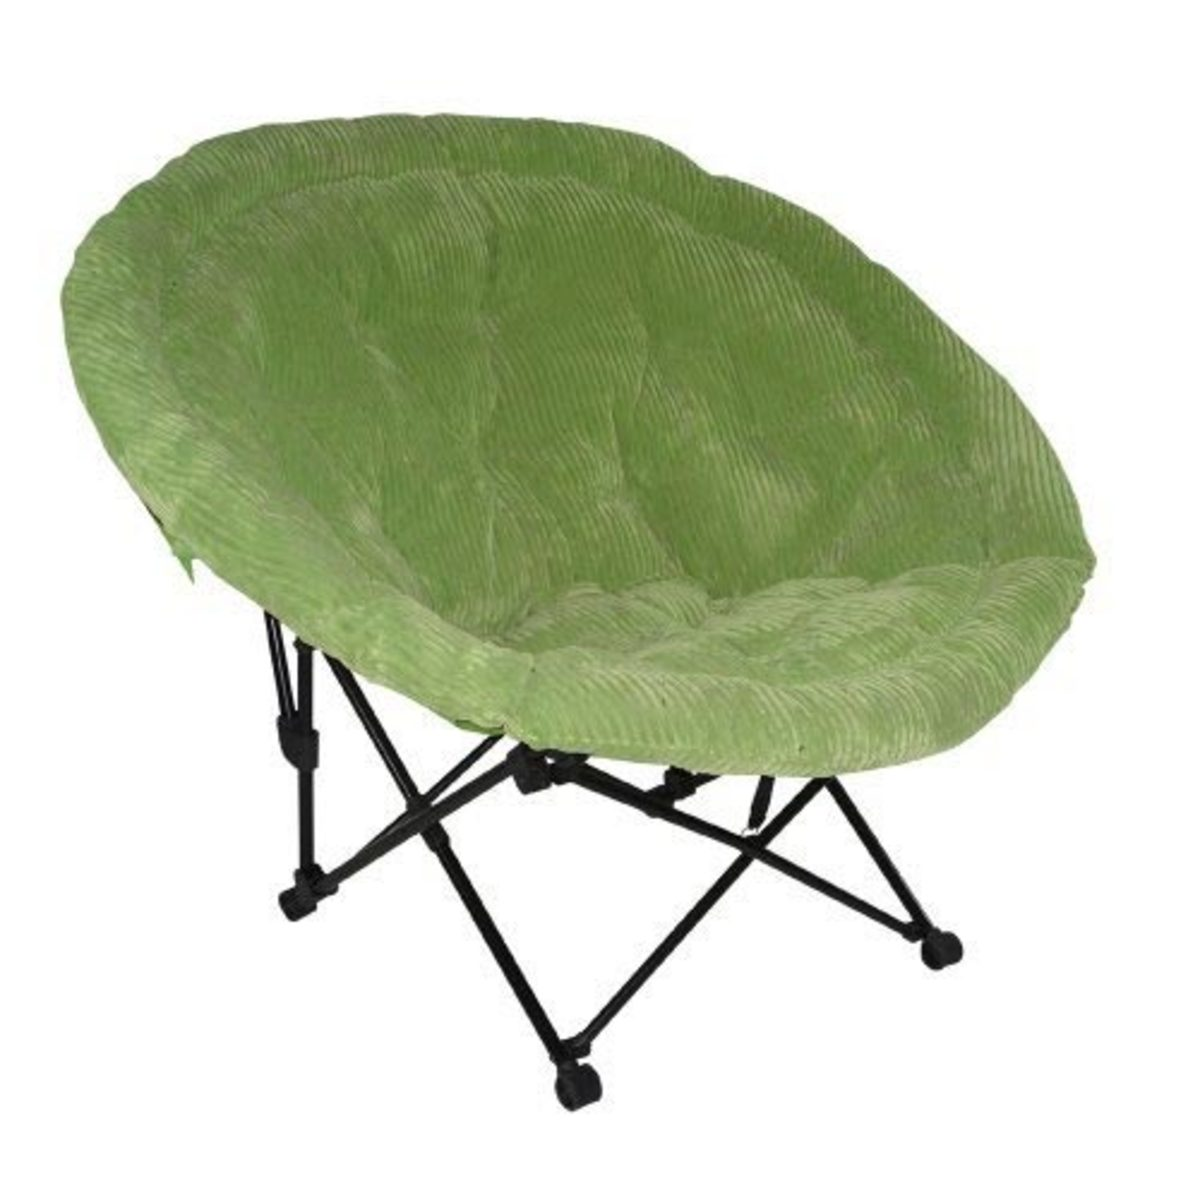 If you have any other suggestions for really cool round chairs leave me a comment in the box below.  sc 1 st  HubPages & Really Cool and Cheap Round Chairs | HubPages